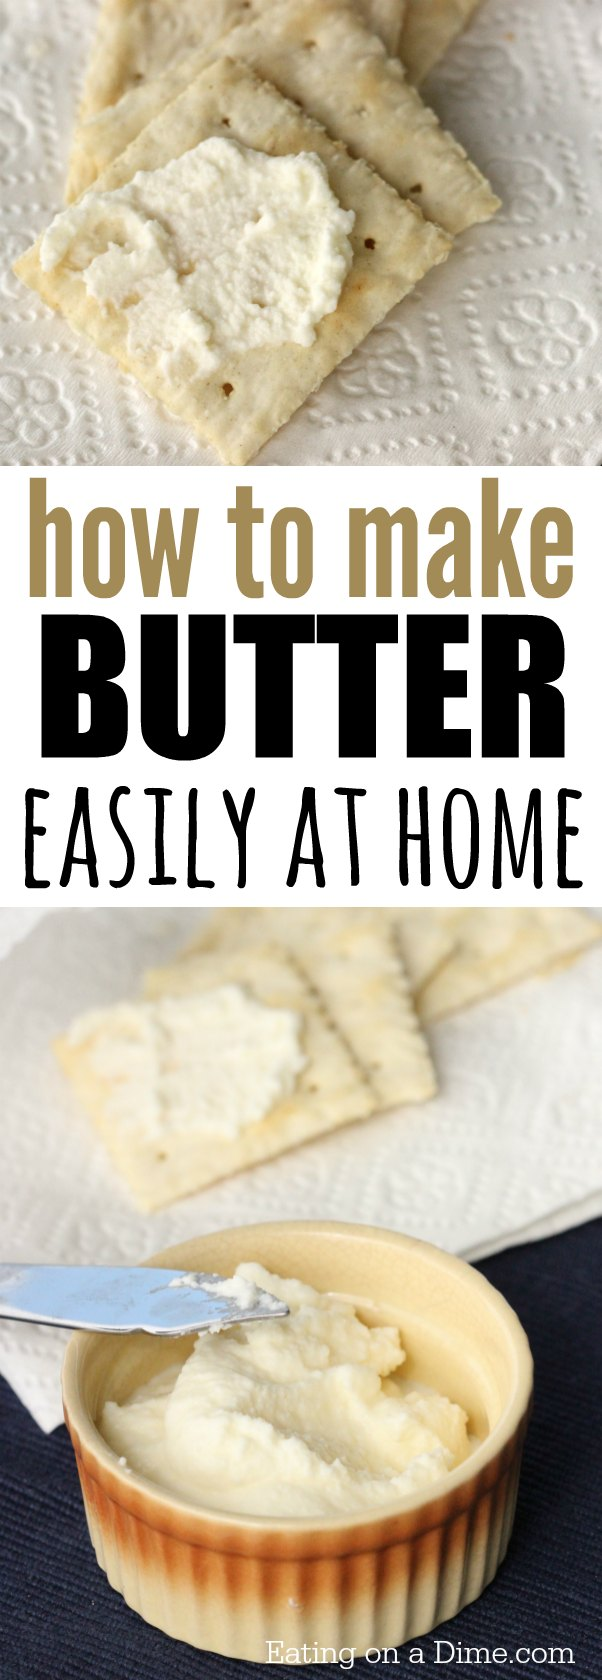 How to make butter with heavy cream - Eating on a Dime